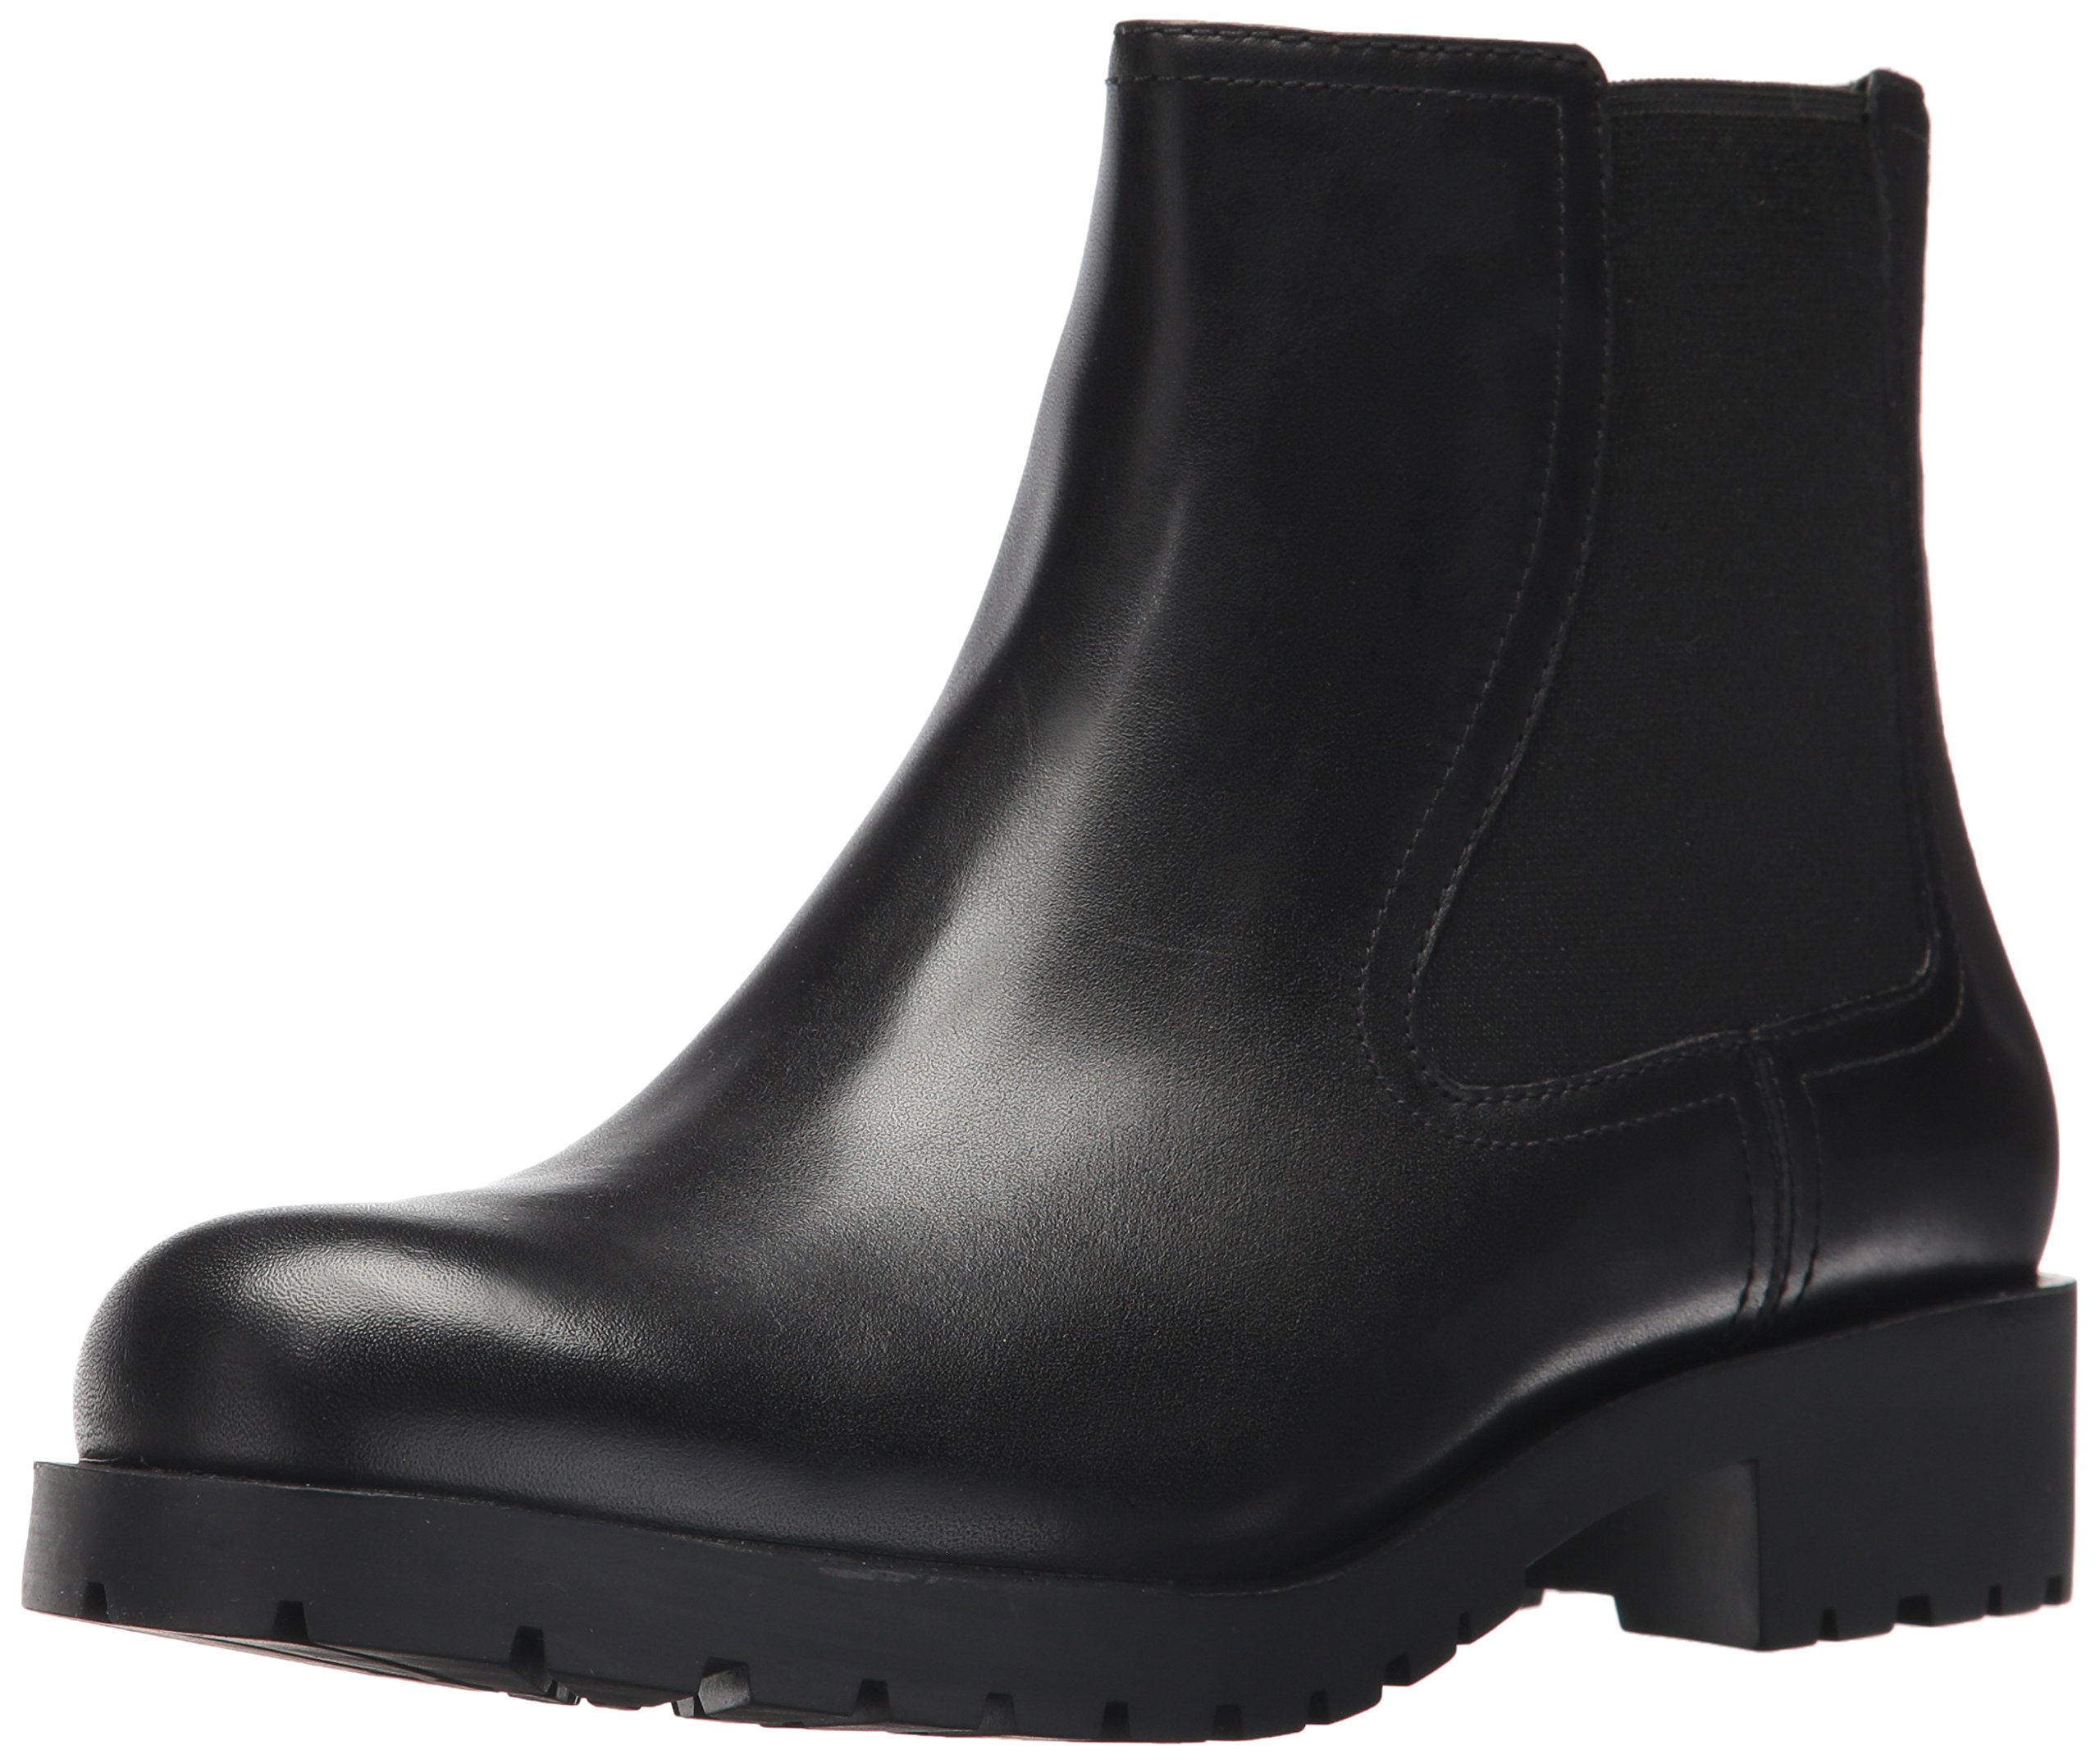 Cole Haan Women's Stanton WP Chelsea, Black Leather, 10 B US by Cole Haan